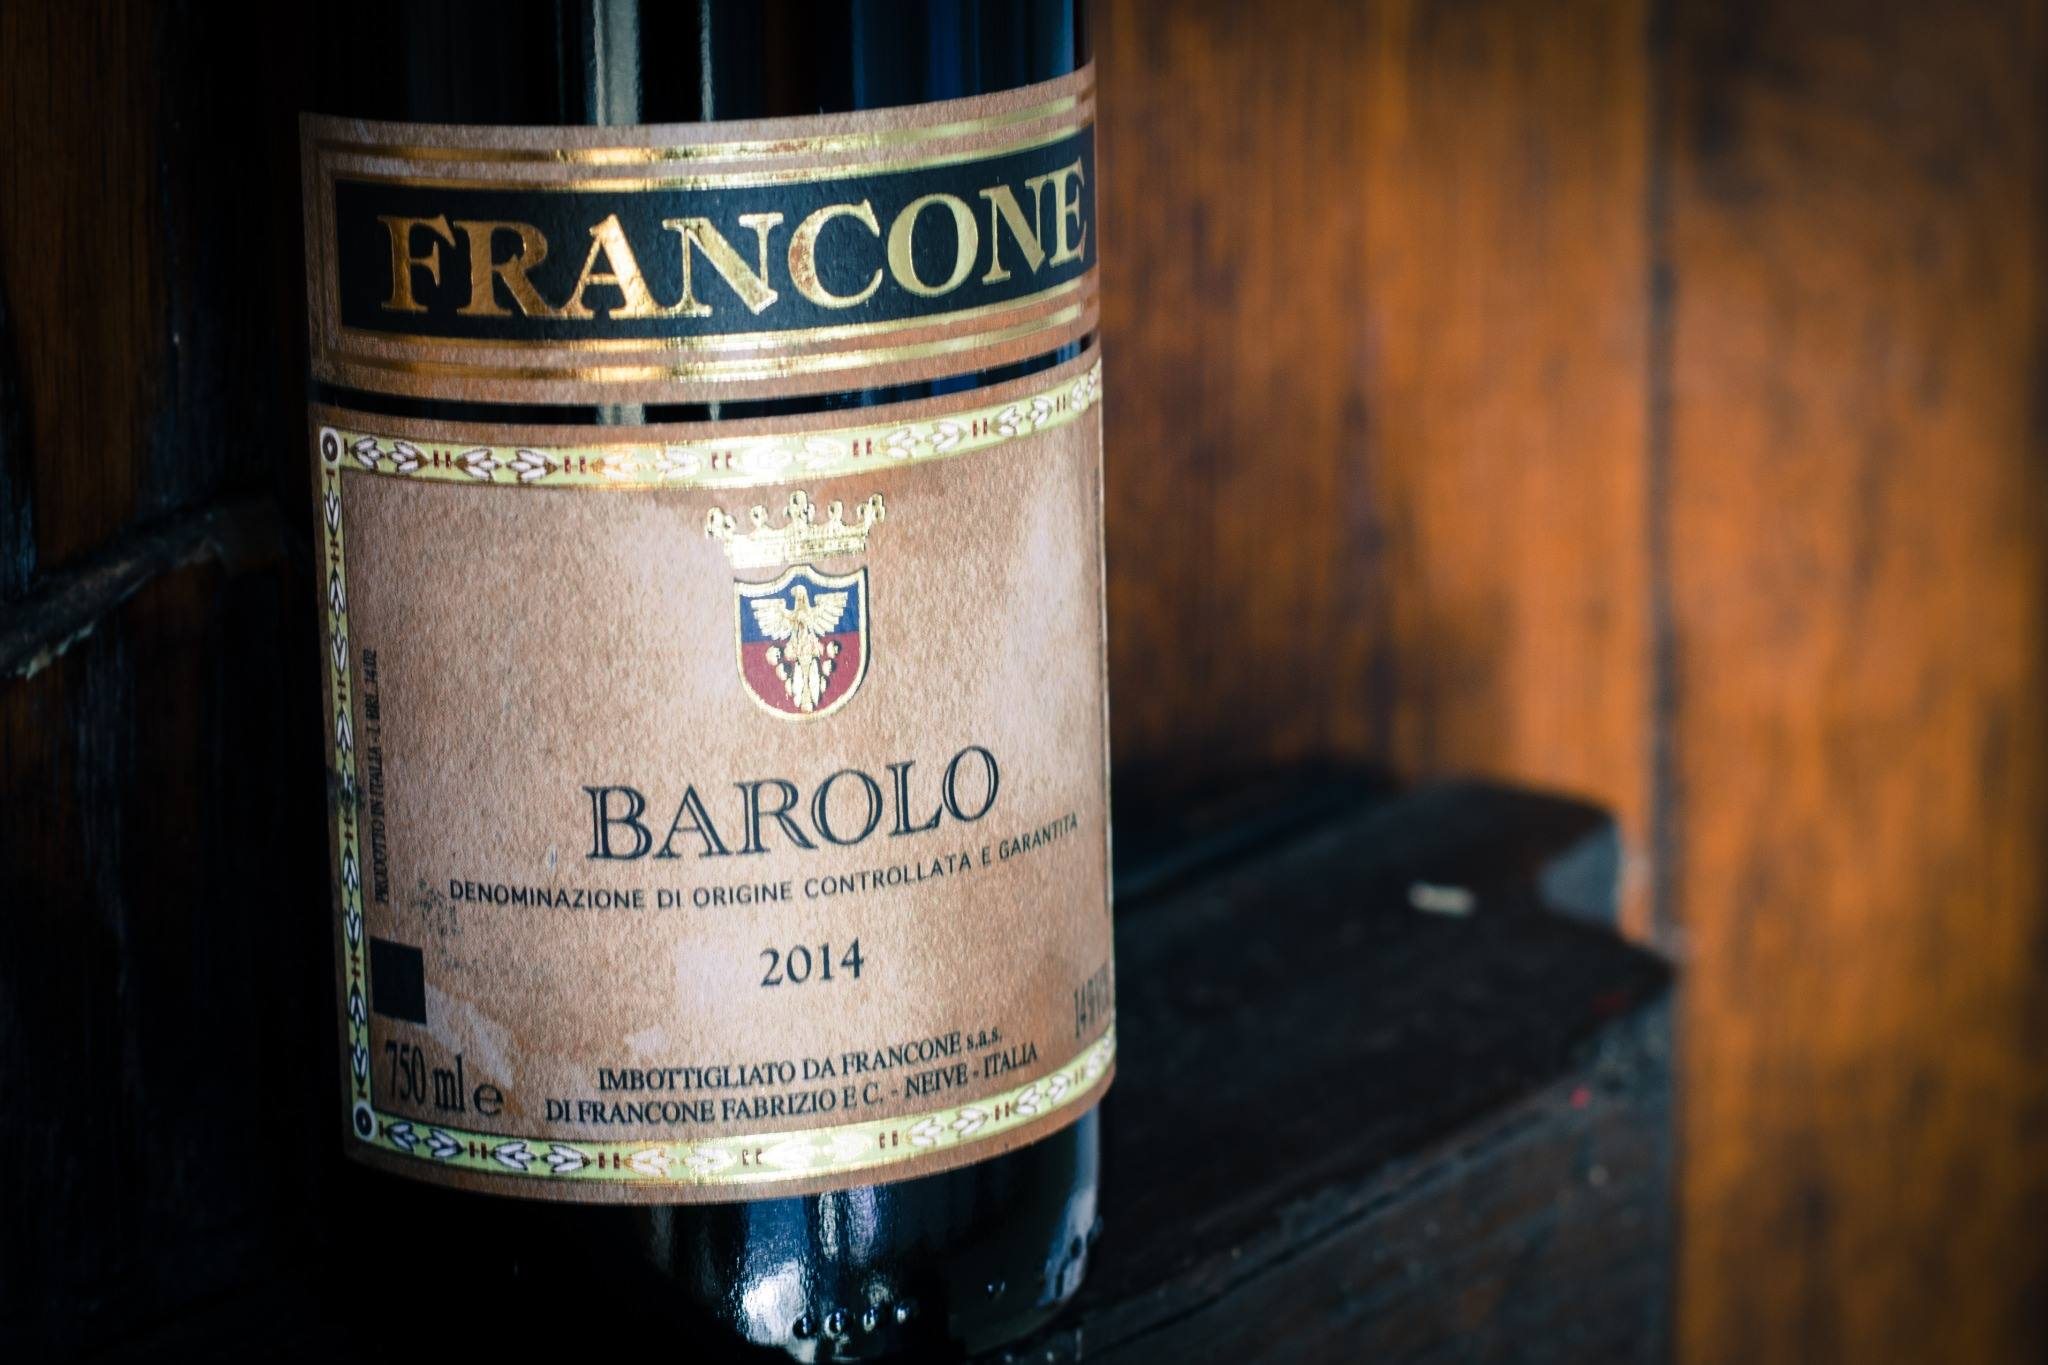 Looking for Barolo in Canada? Our red wines land in Québec